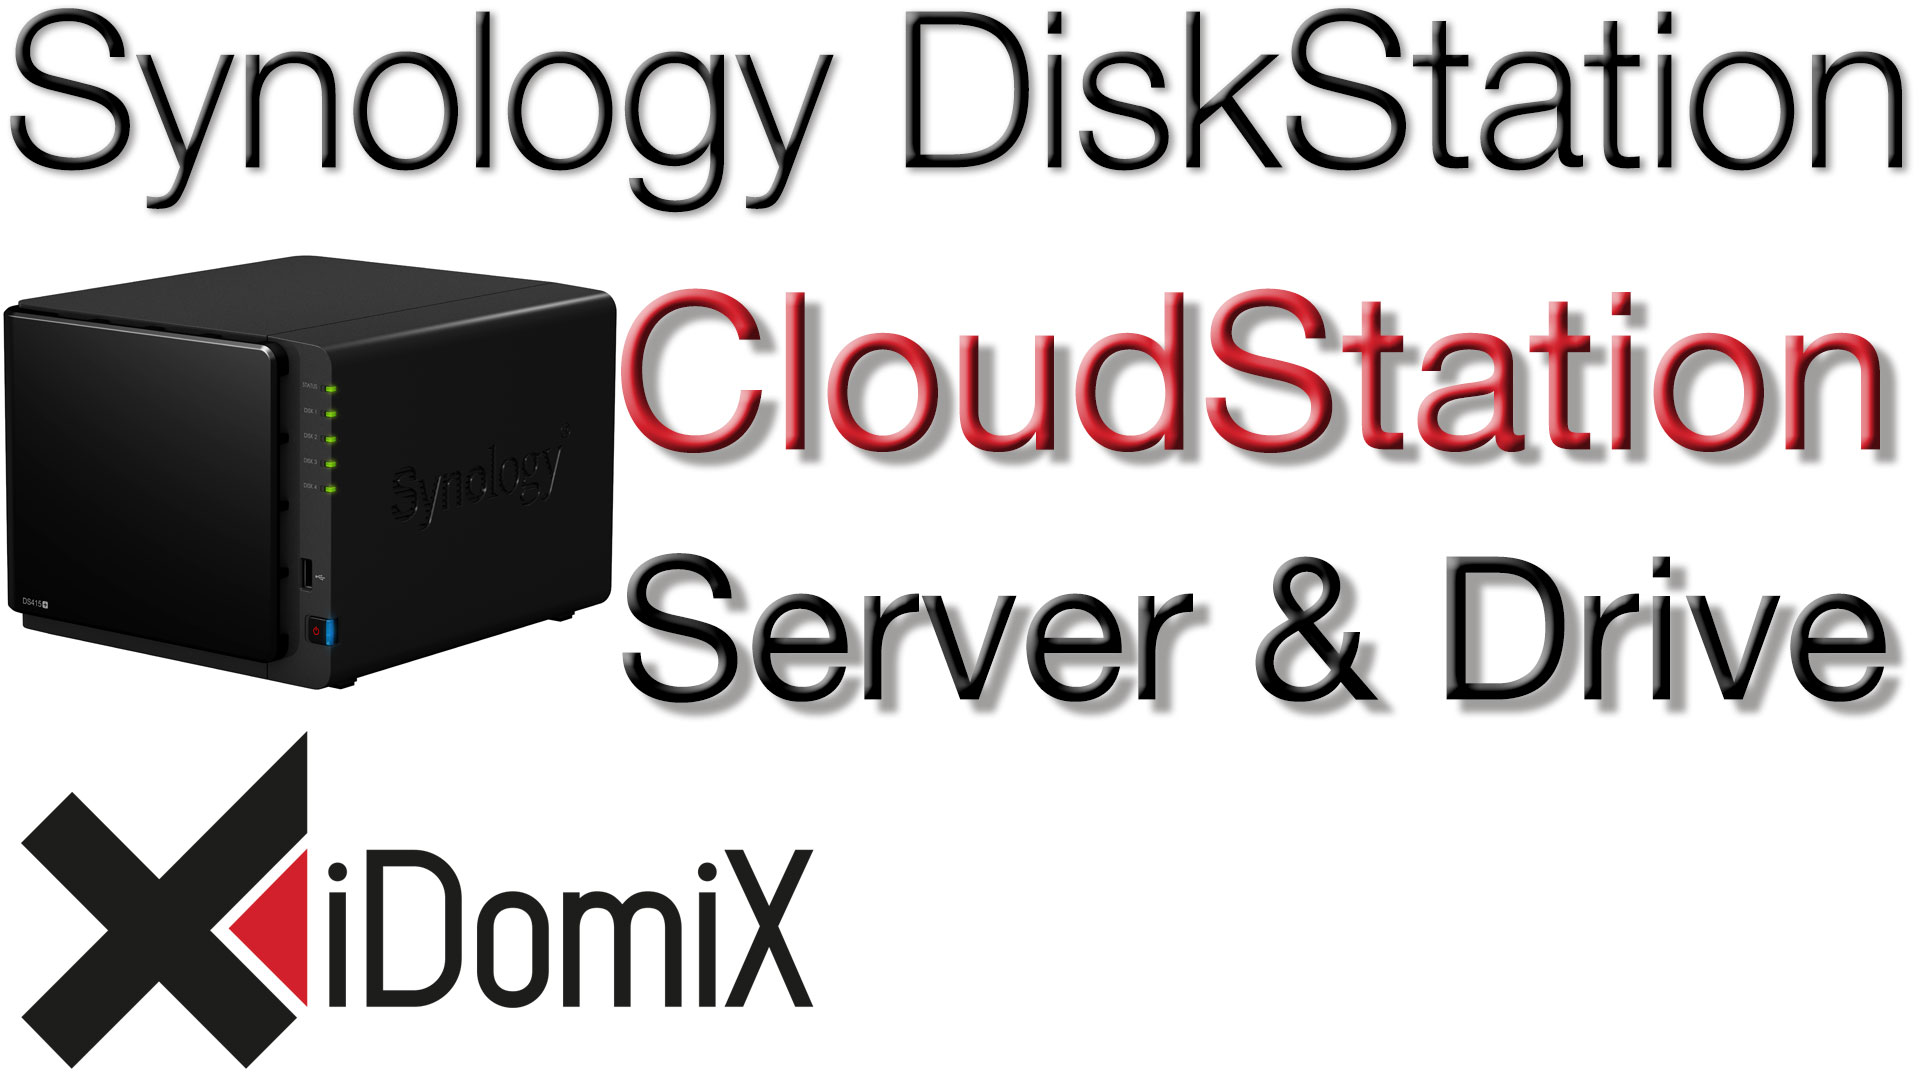 Synology DiskStation DSM 6 Cloud Station Server und Drive einrichten